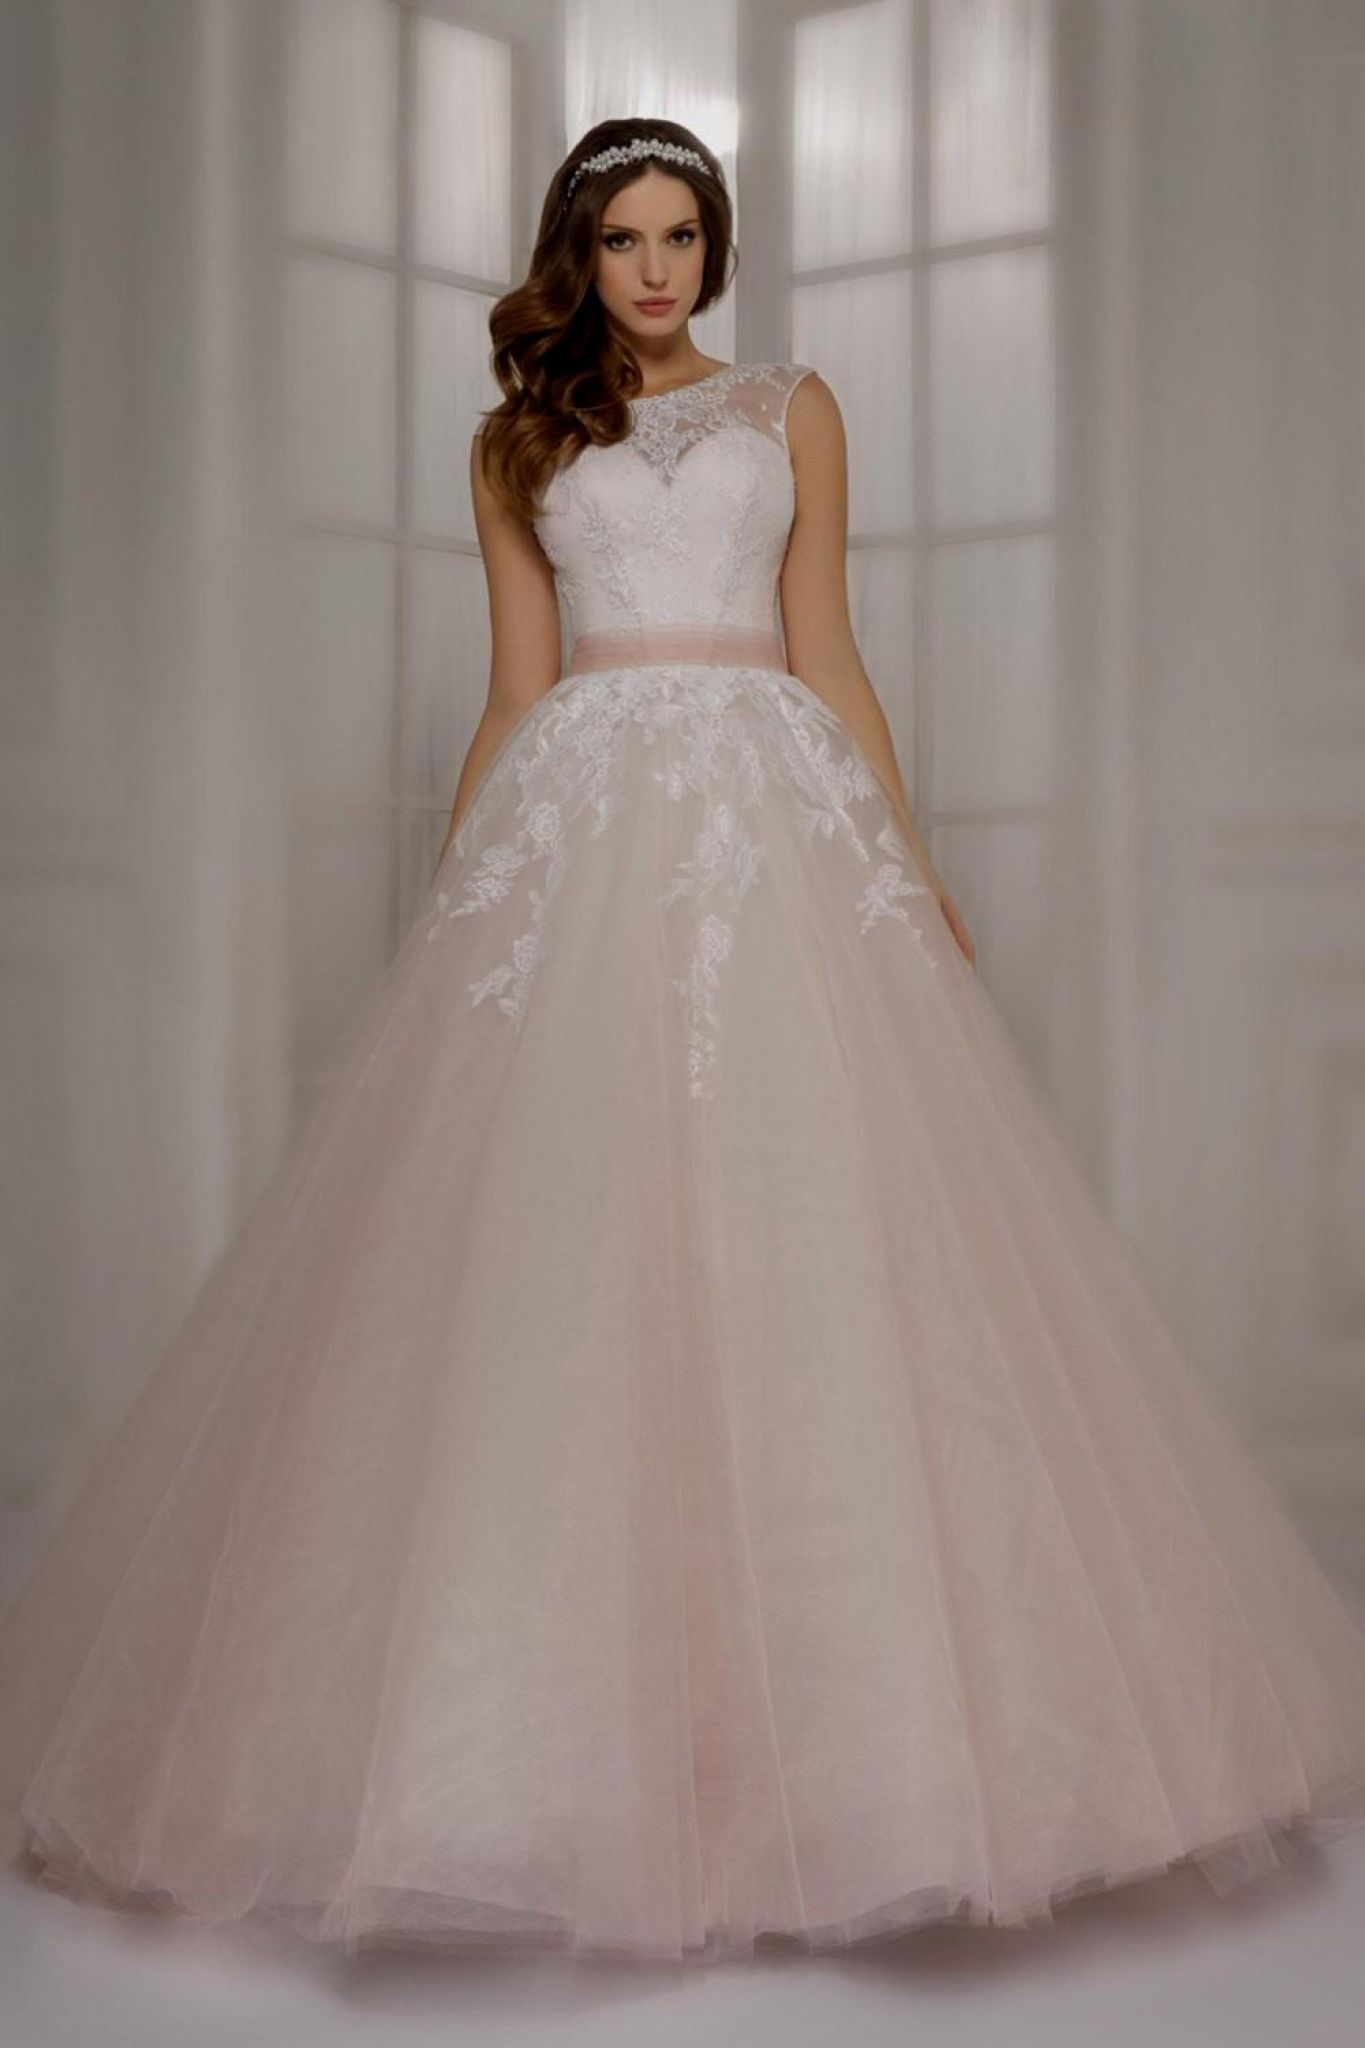 pale pink wedding dresses - dresses for wedding party Check more at ...